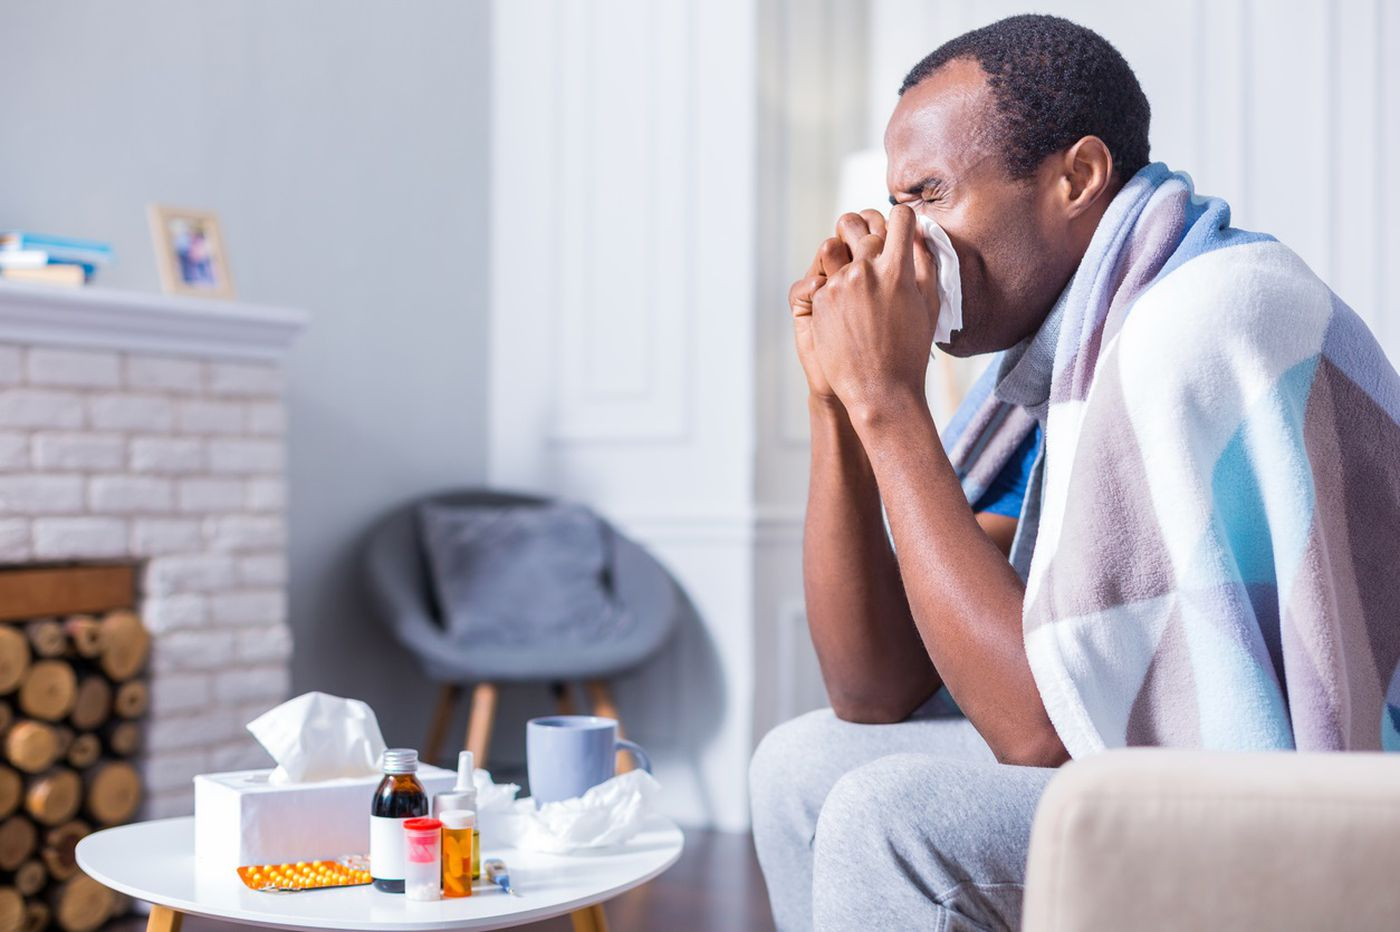 Cold or flu? Take this doctor's advice on what to do.